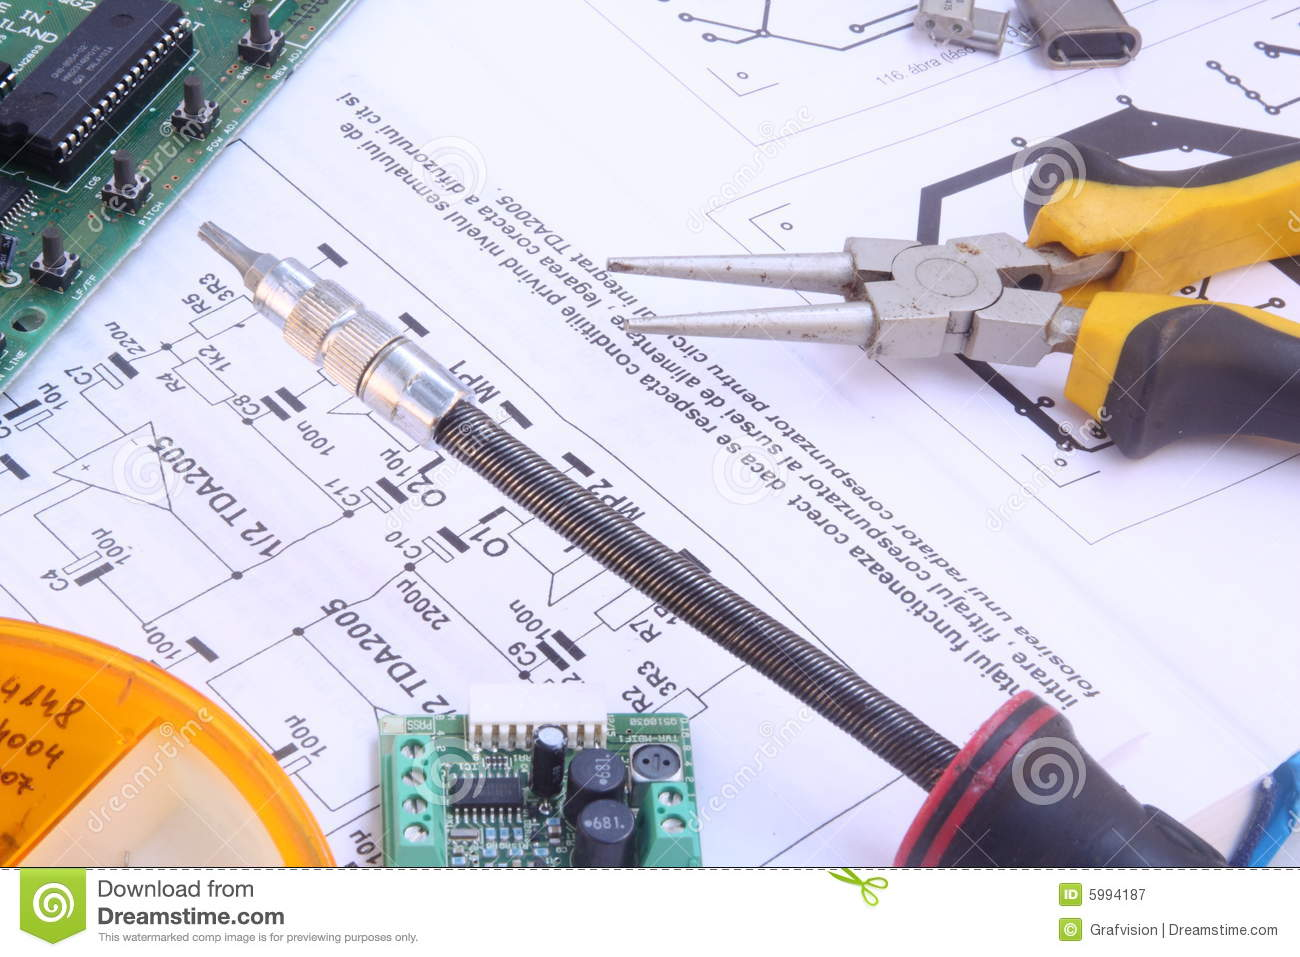 wire harness design engineer wire get free image about